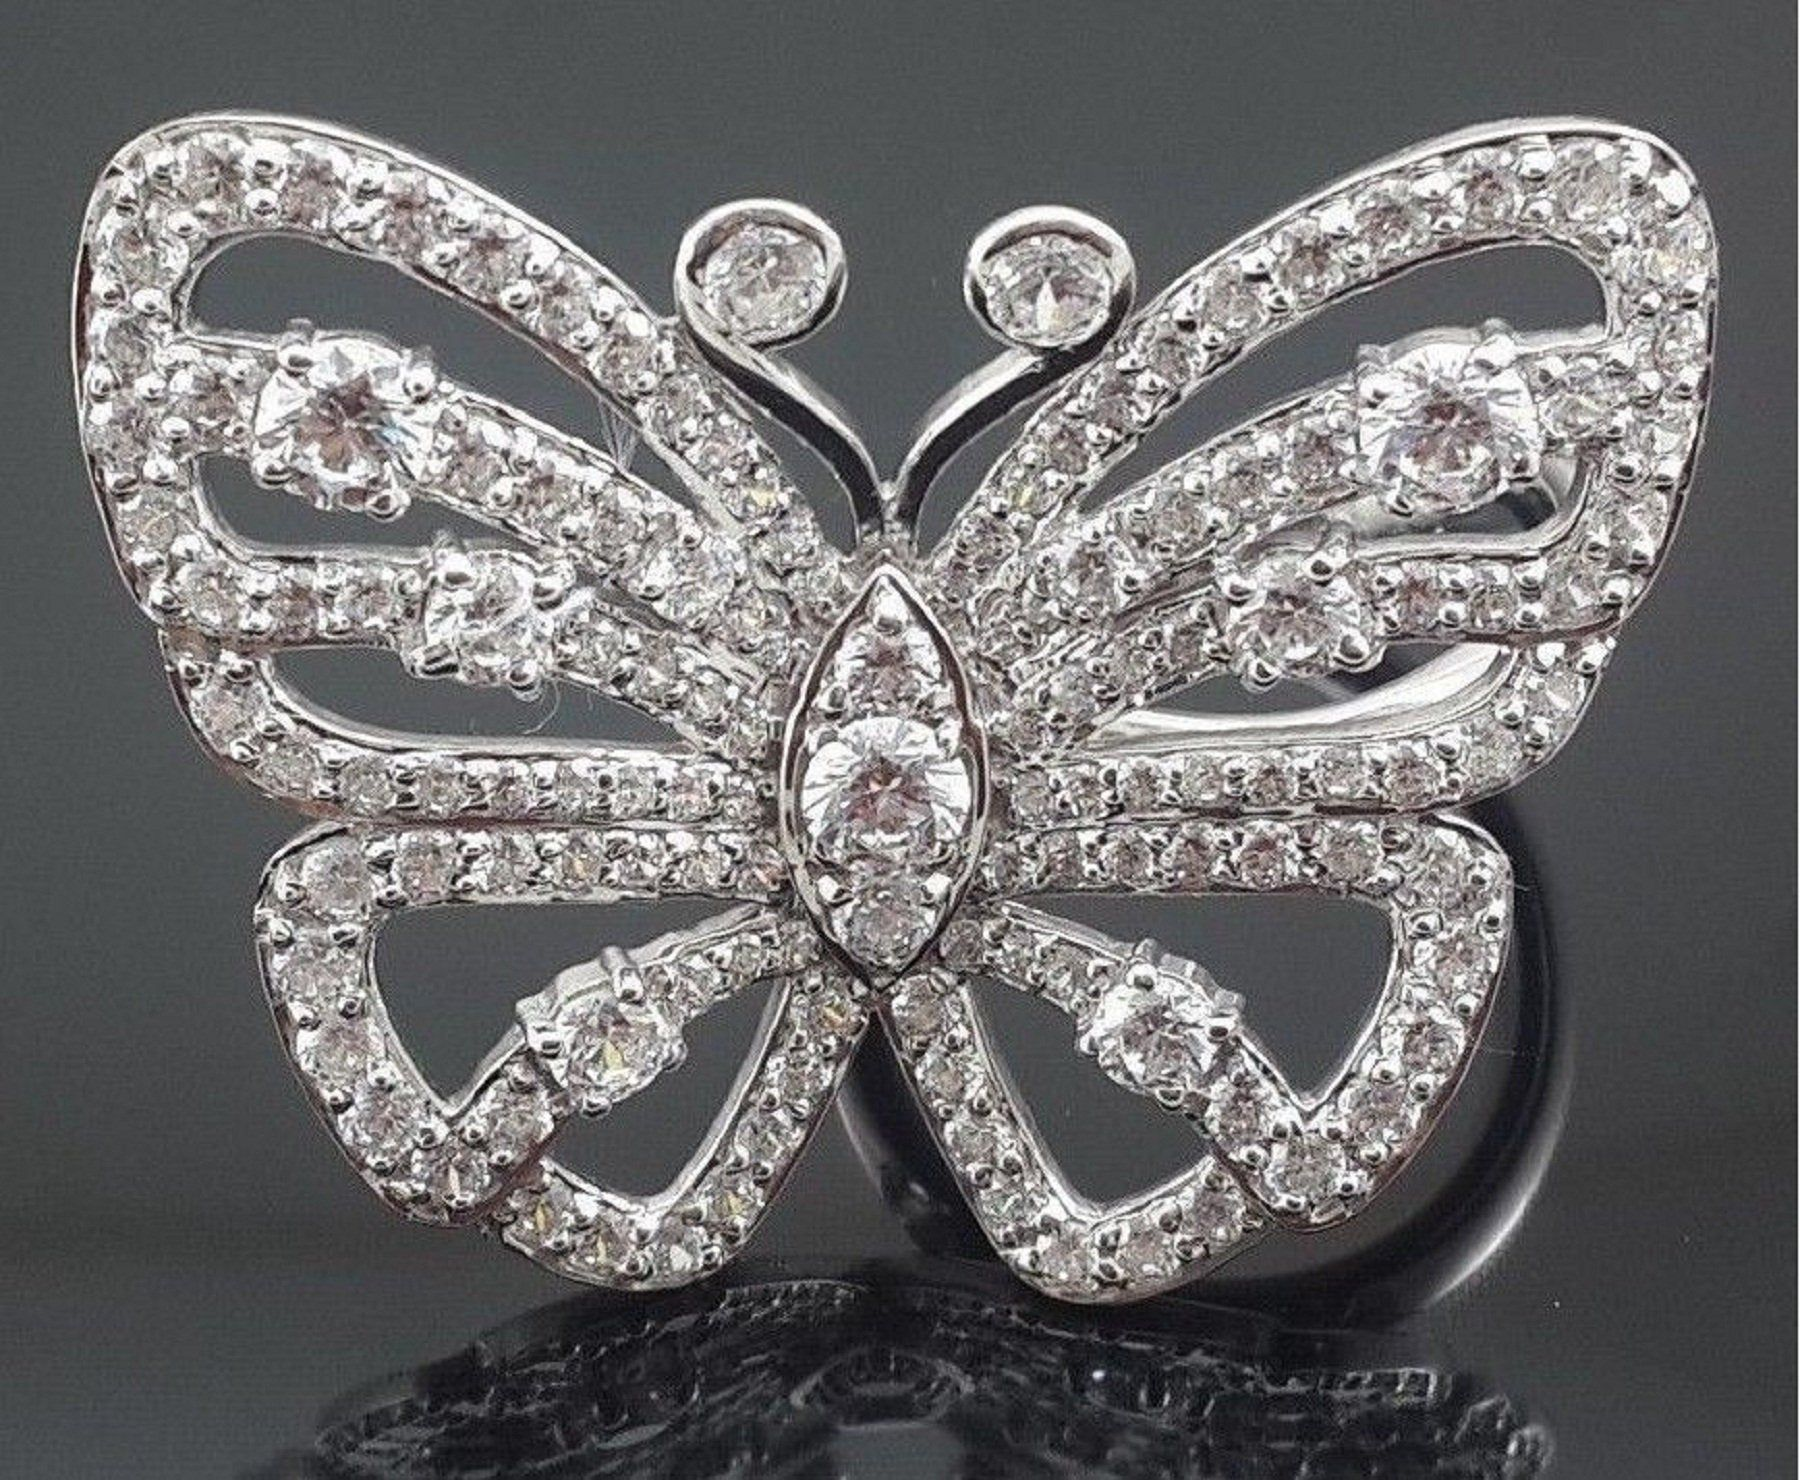 925 Sterling Silver CZ Mariah Carey Inspired Butterfly